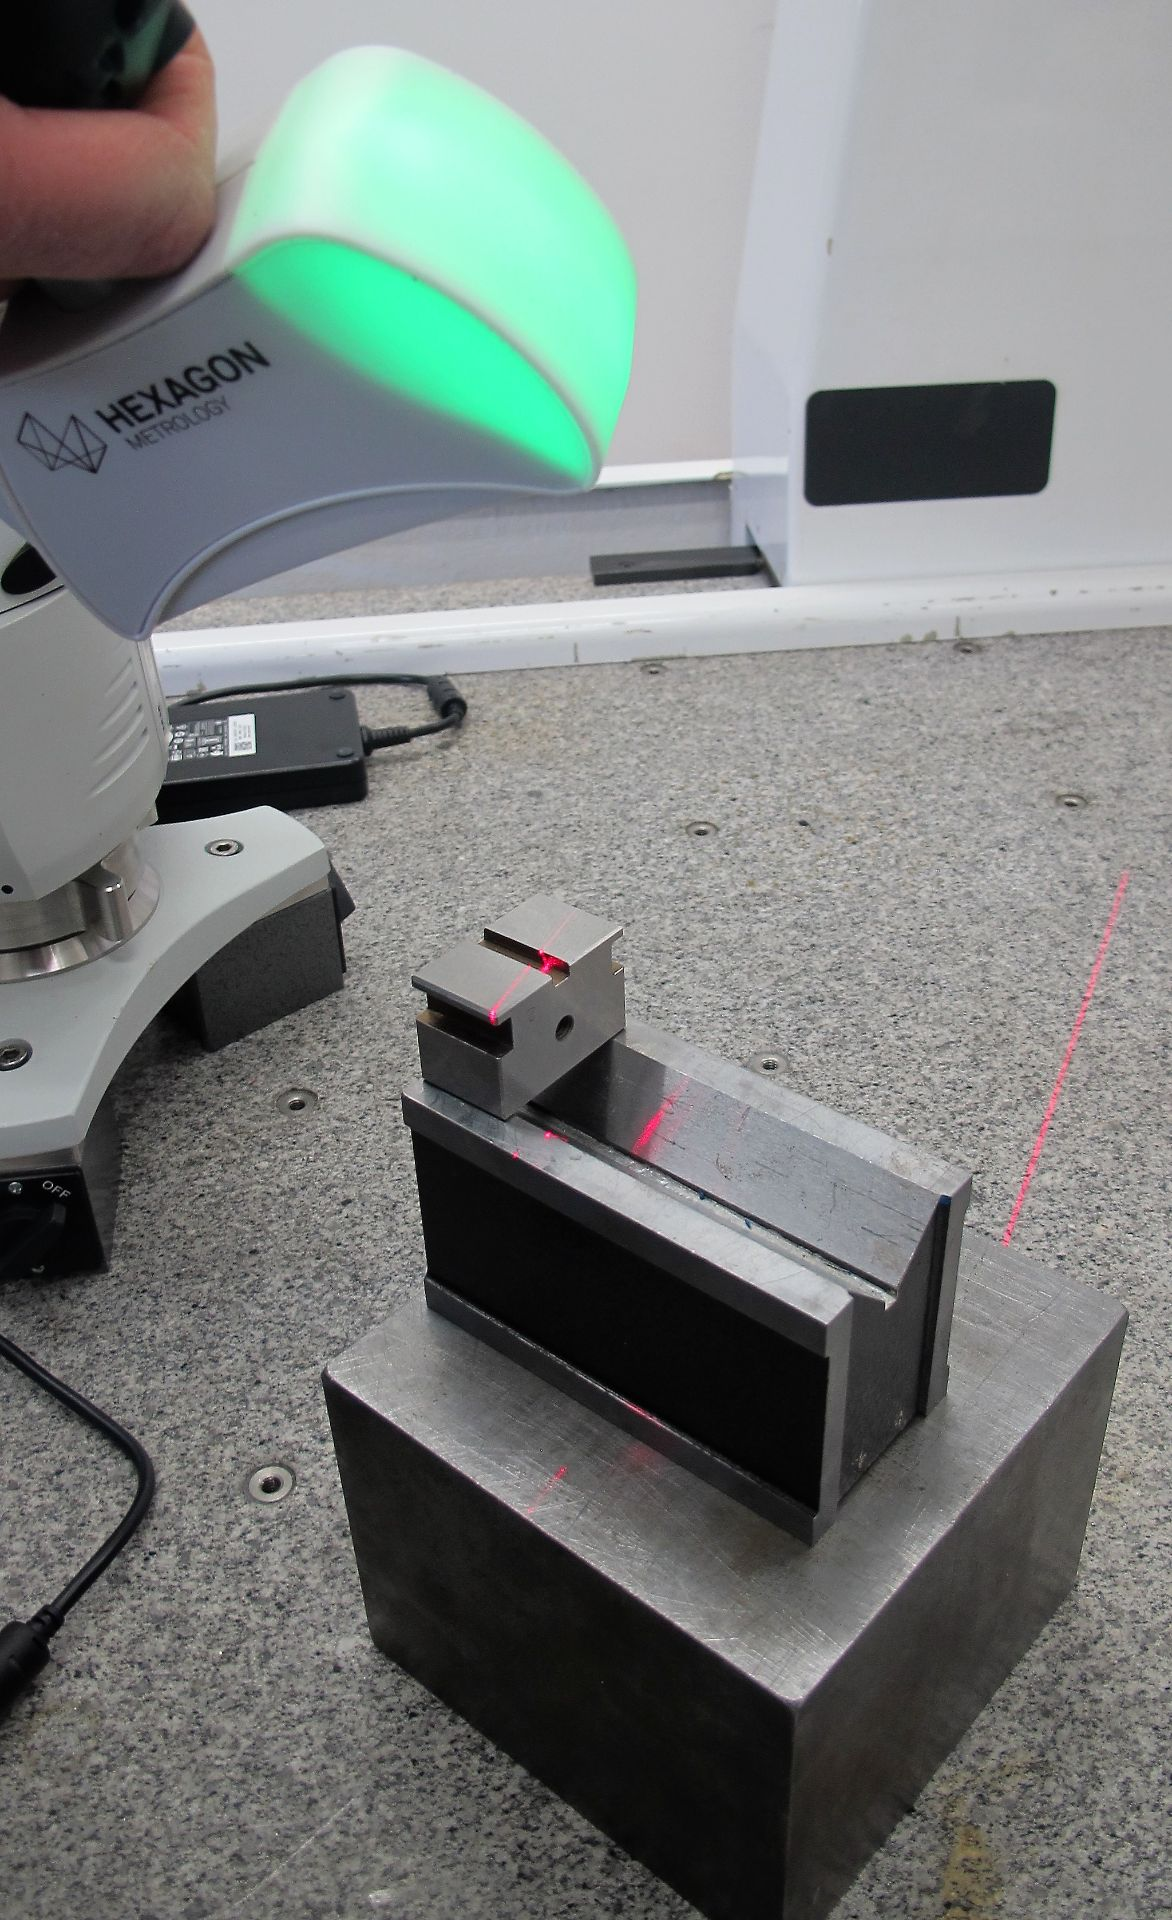 Lot 1 - 2017 ROMER 7300 ABSOLUTE ARM PORTABLE CMM, S/N 7320-6780-UC (LIKE NEW), W/HEXAGON HP-L-8. 9 LASER